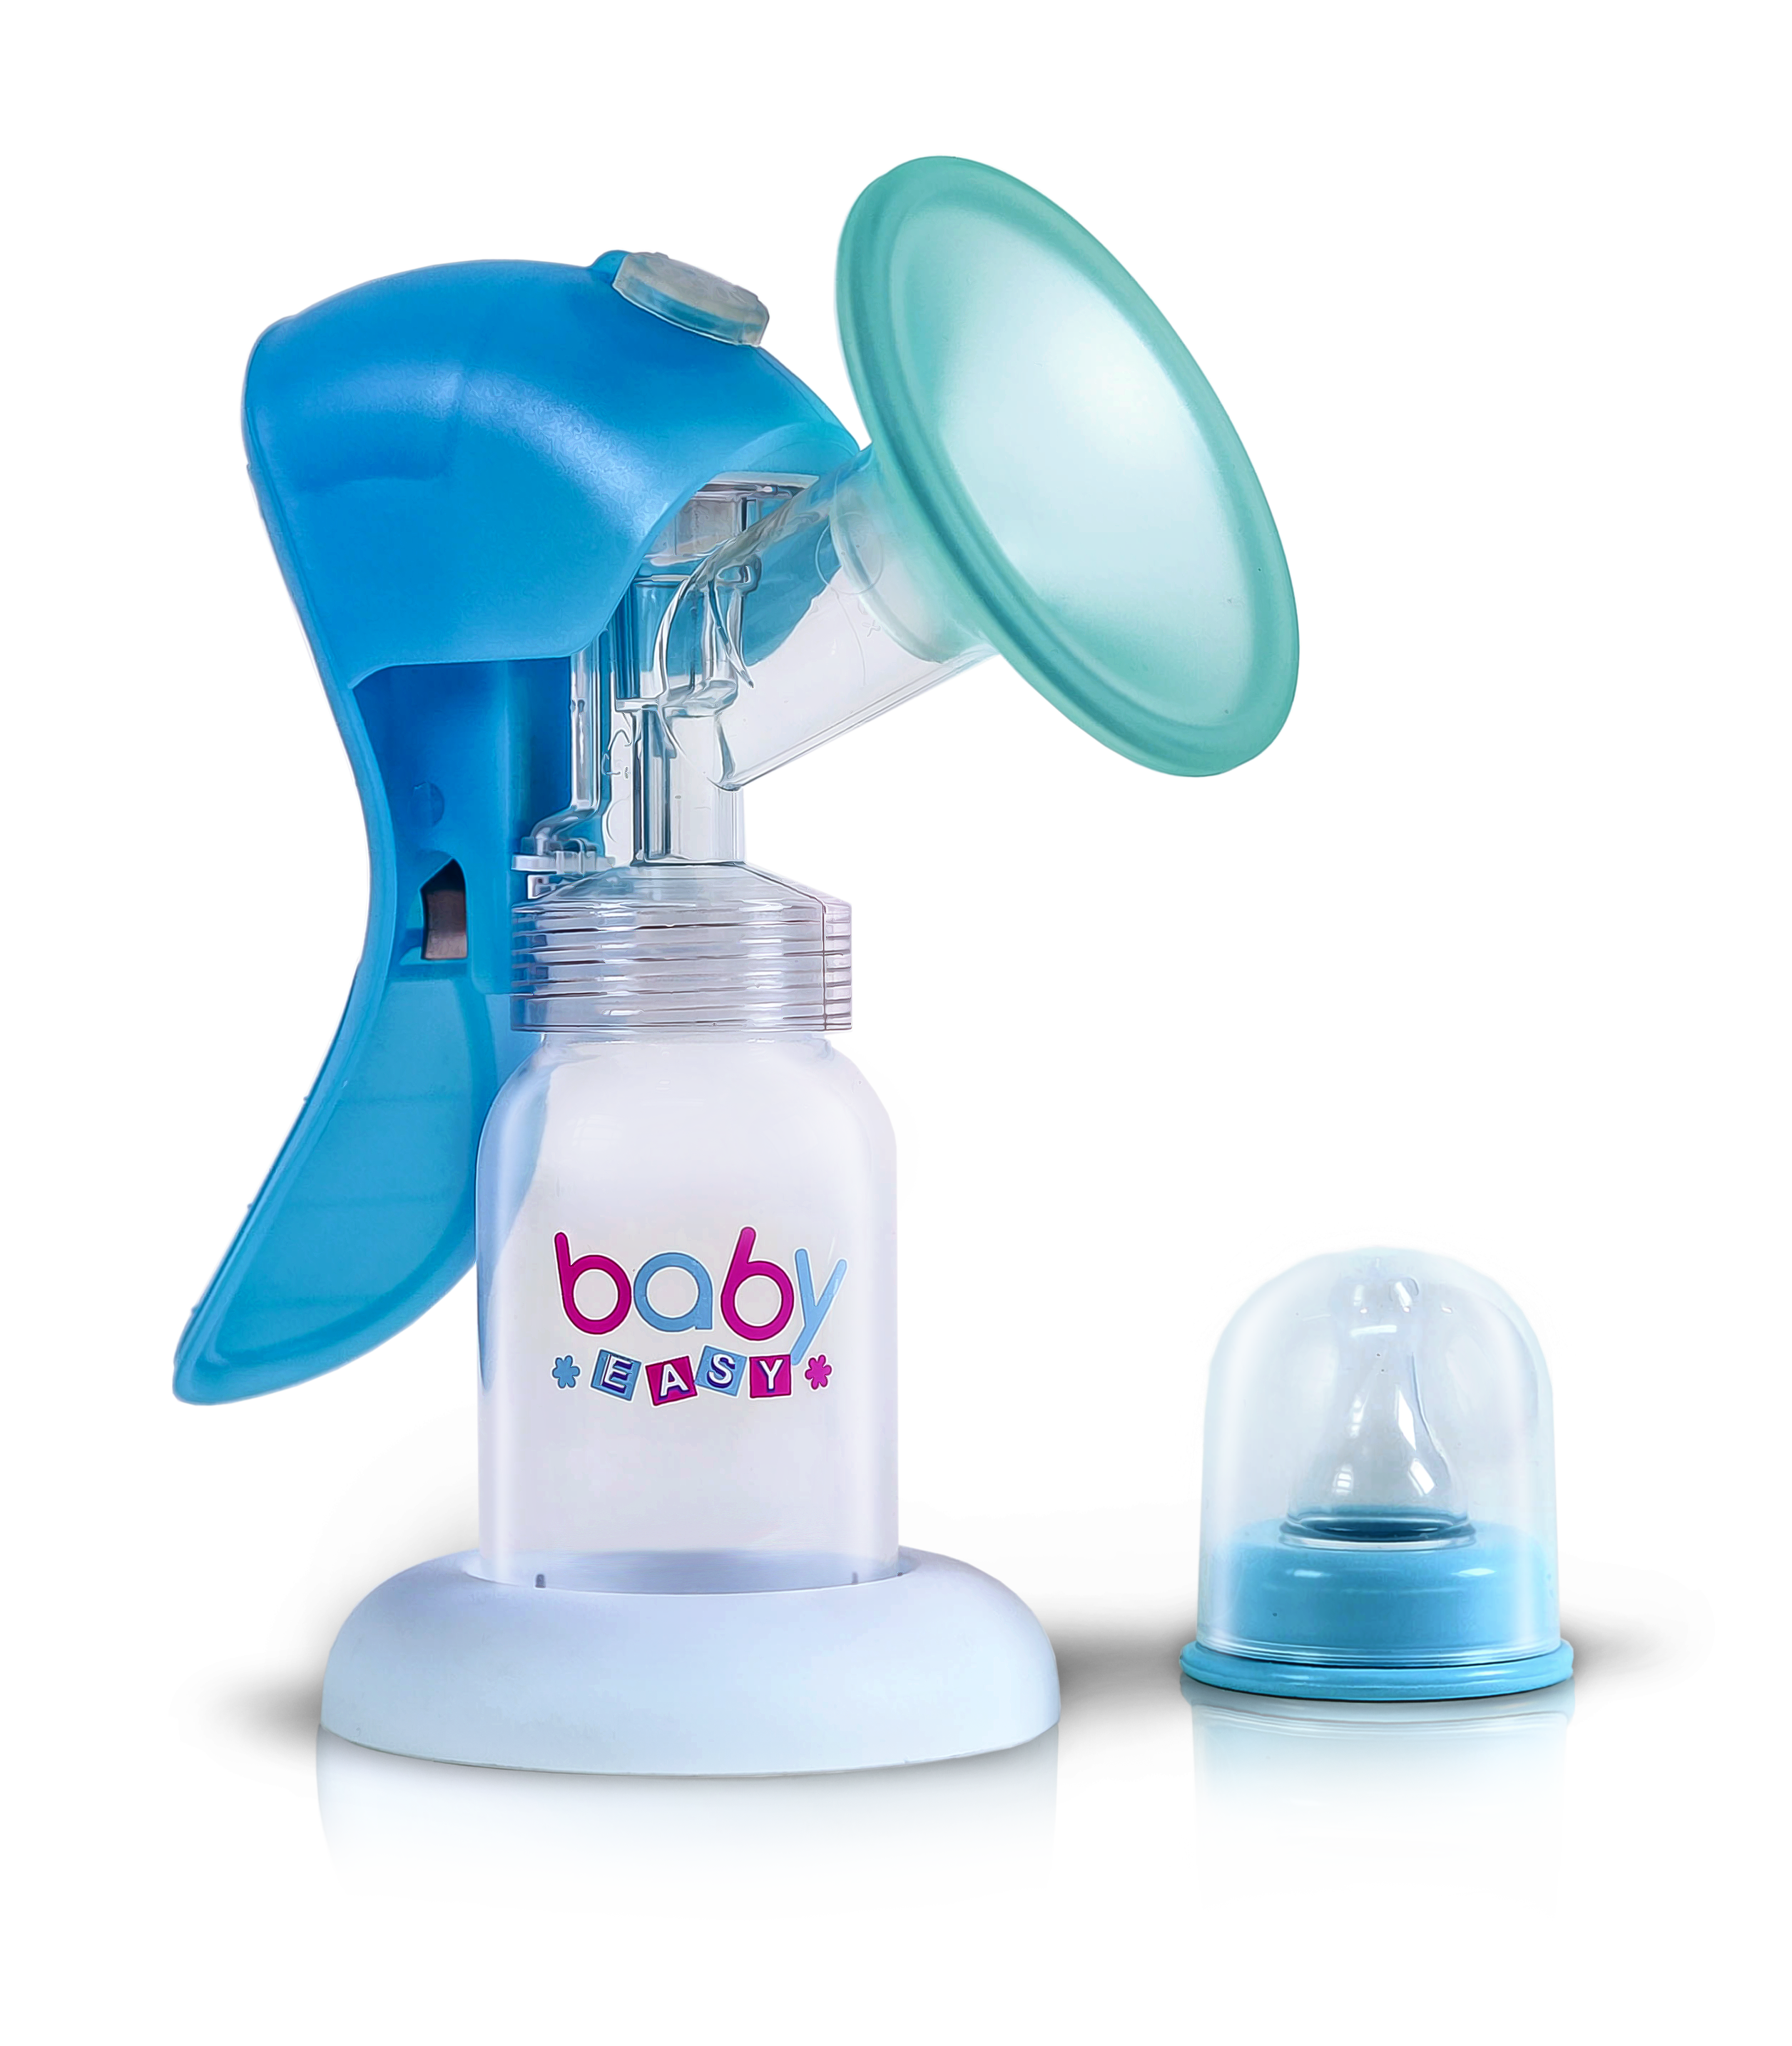 breast pump up